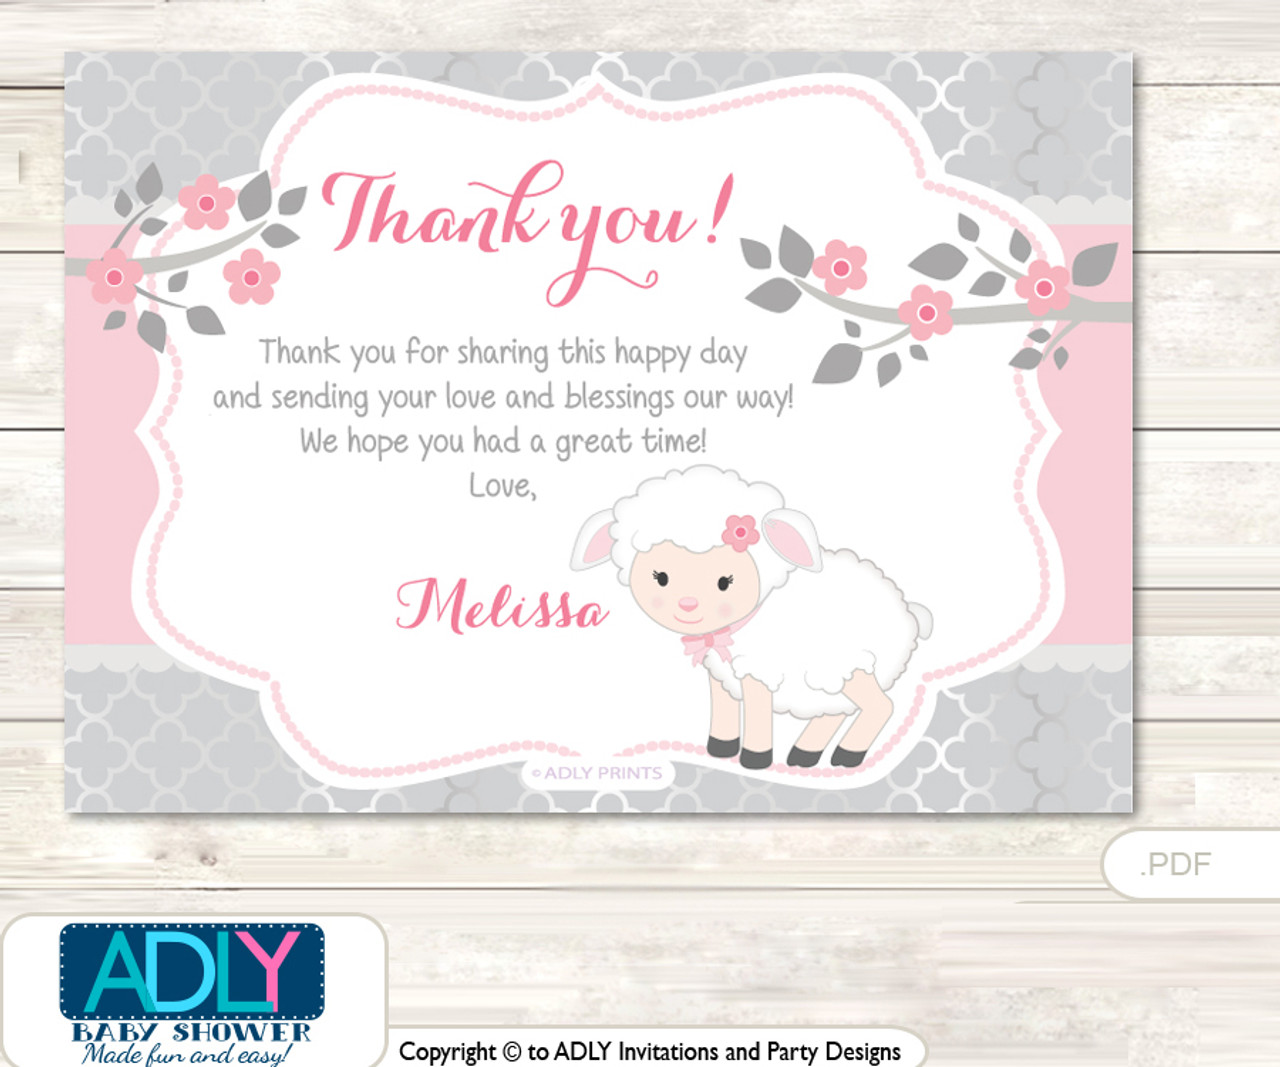 graphic about Baby Shower Cards Printable named Red Lamb Thank oneself Printable Card with Reputation Personalization for Youngster Shower or Birthday Celebration